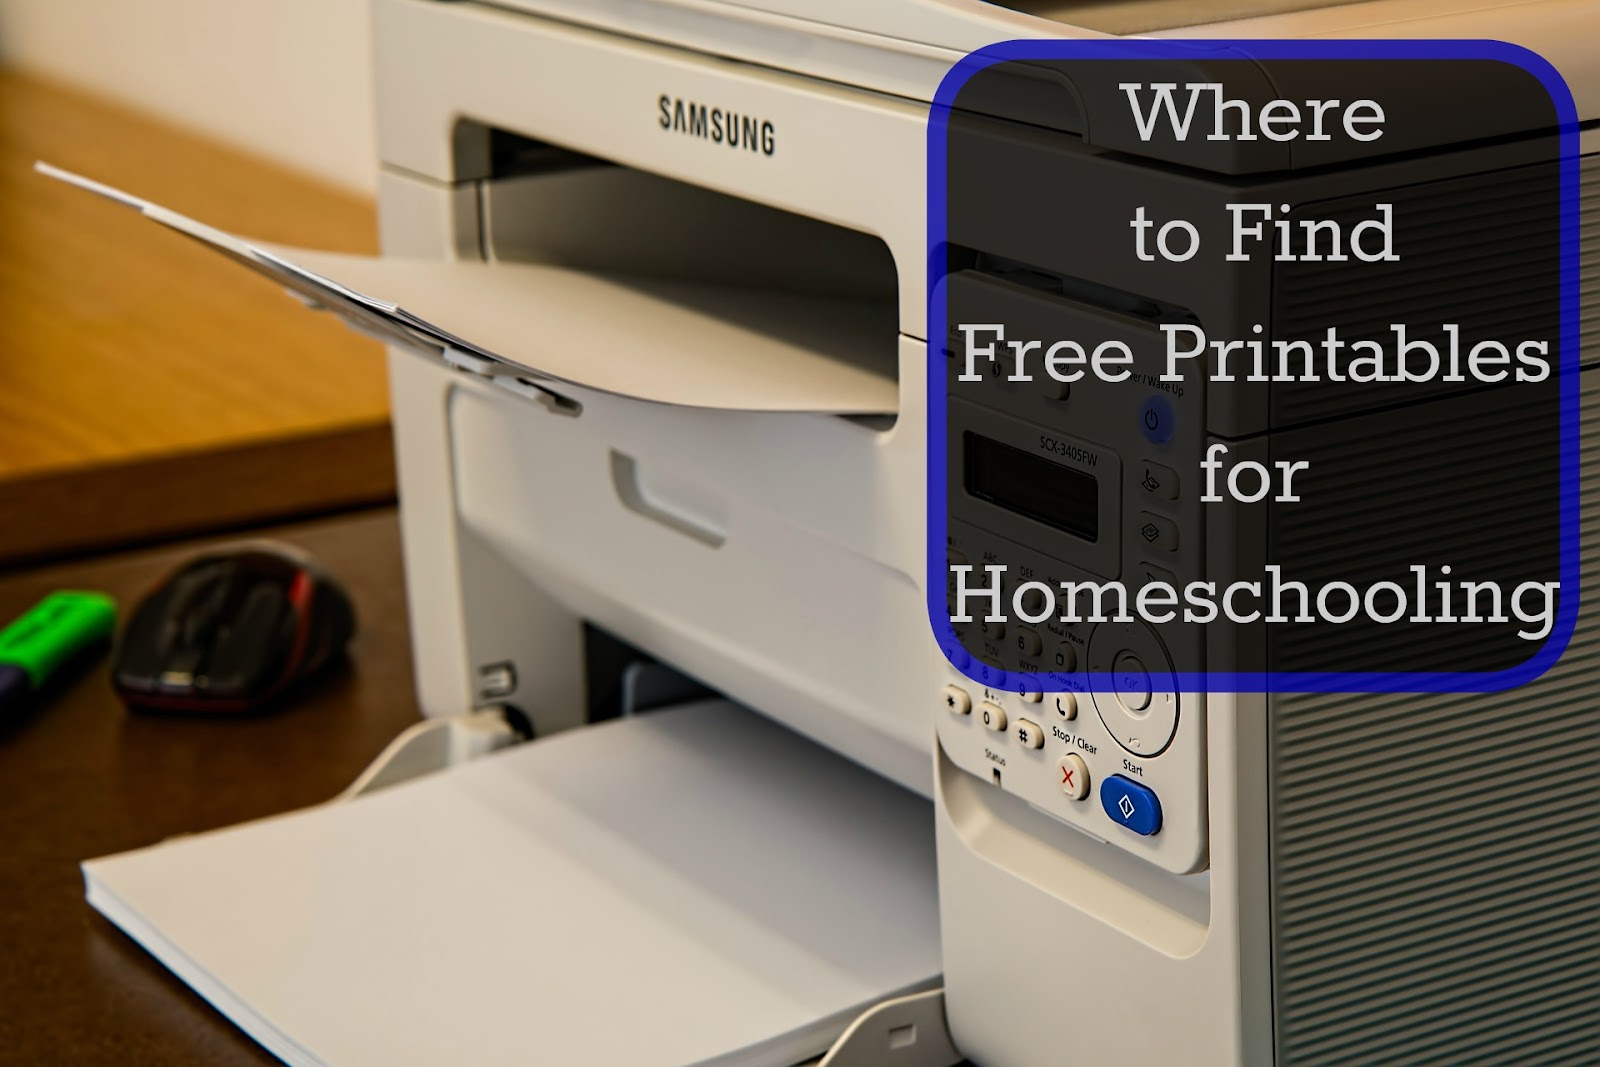 Our Unschooling Journey Through Life Using Free Printables In Our Homeschool